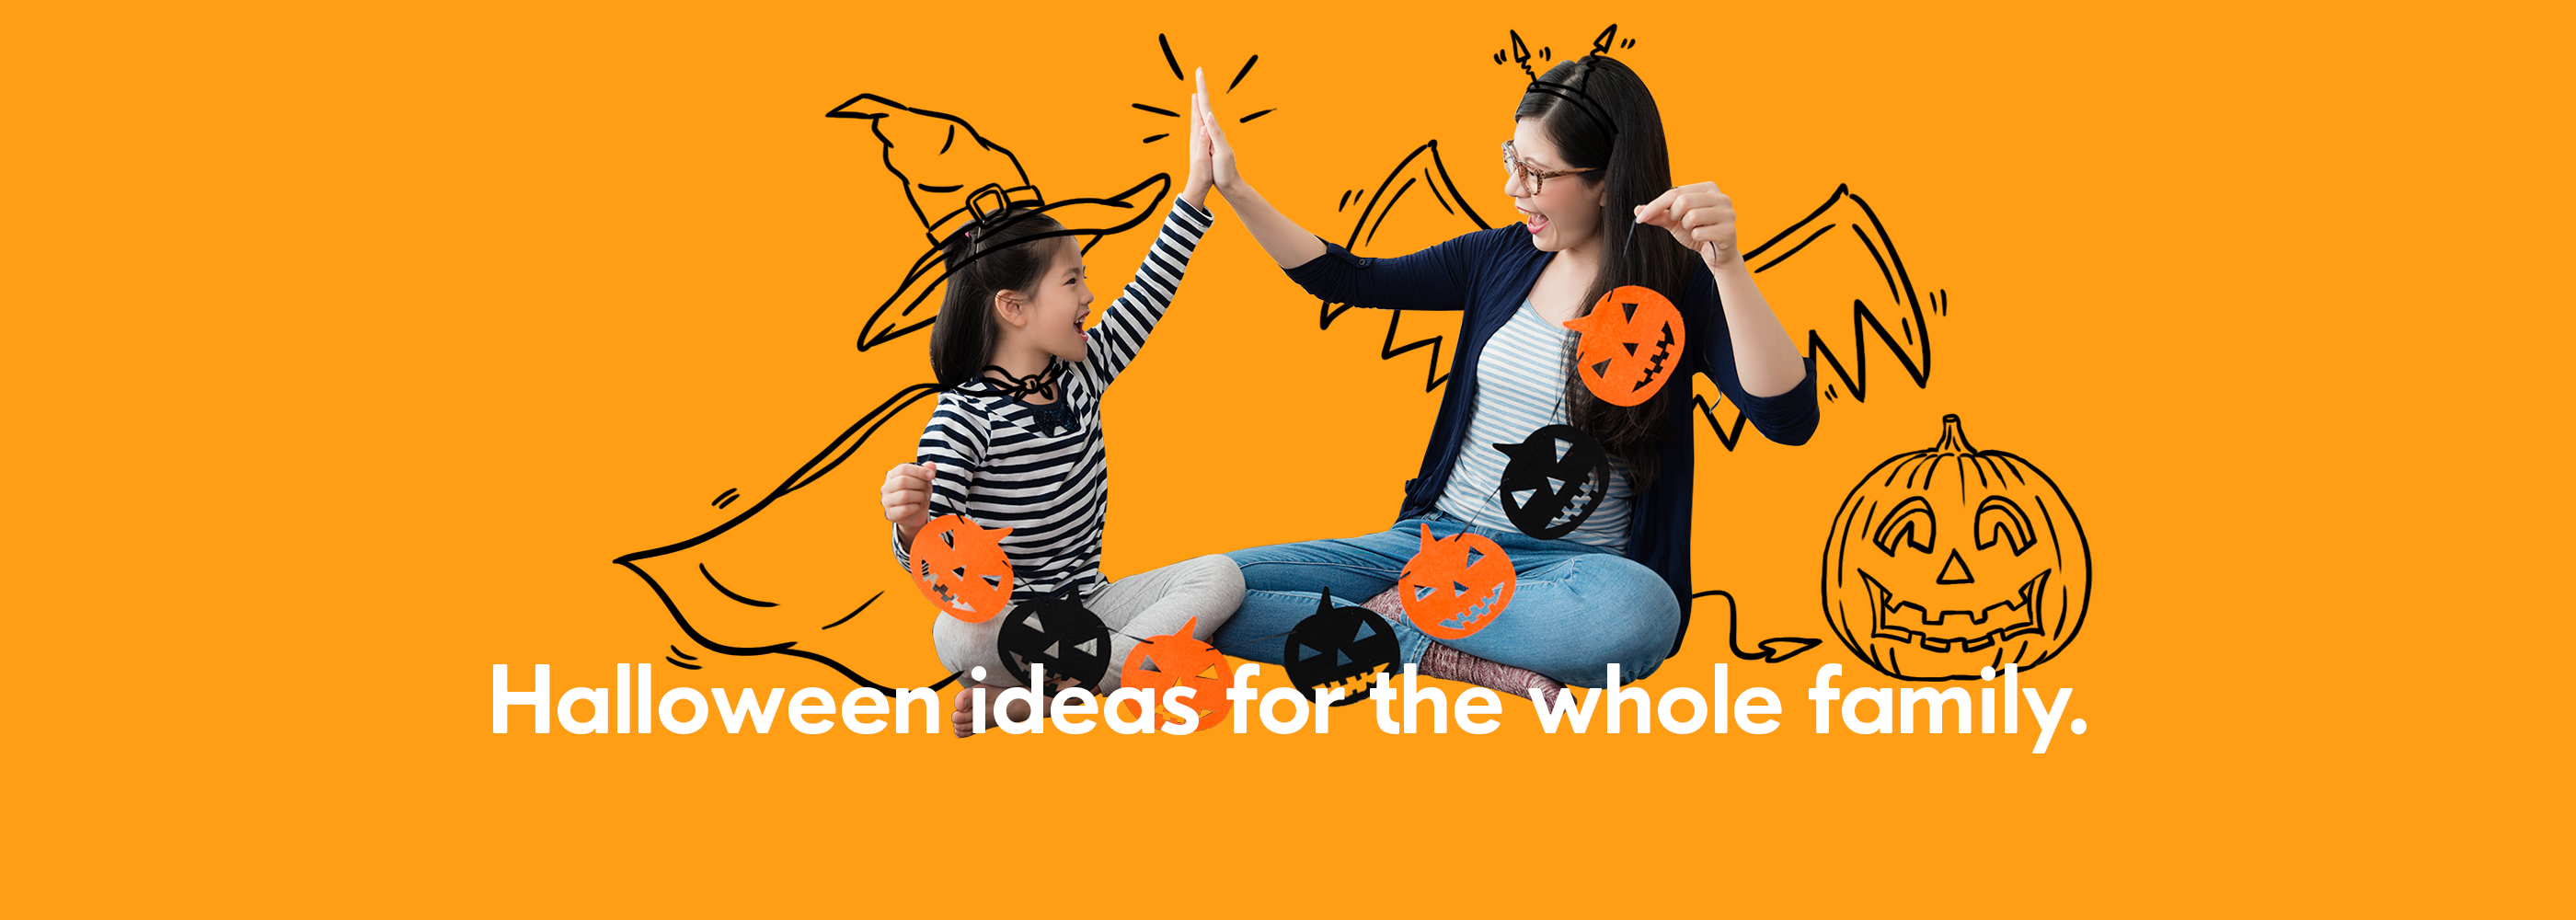 Halloween ideas for the whole family